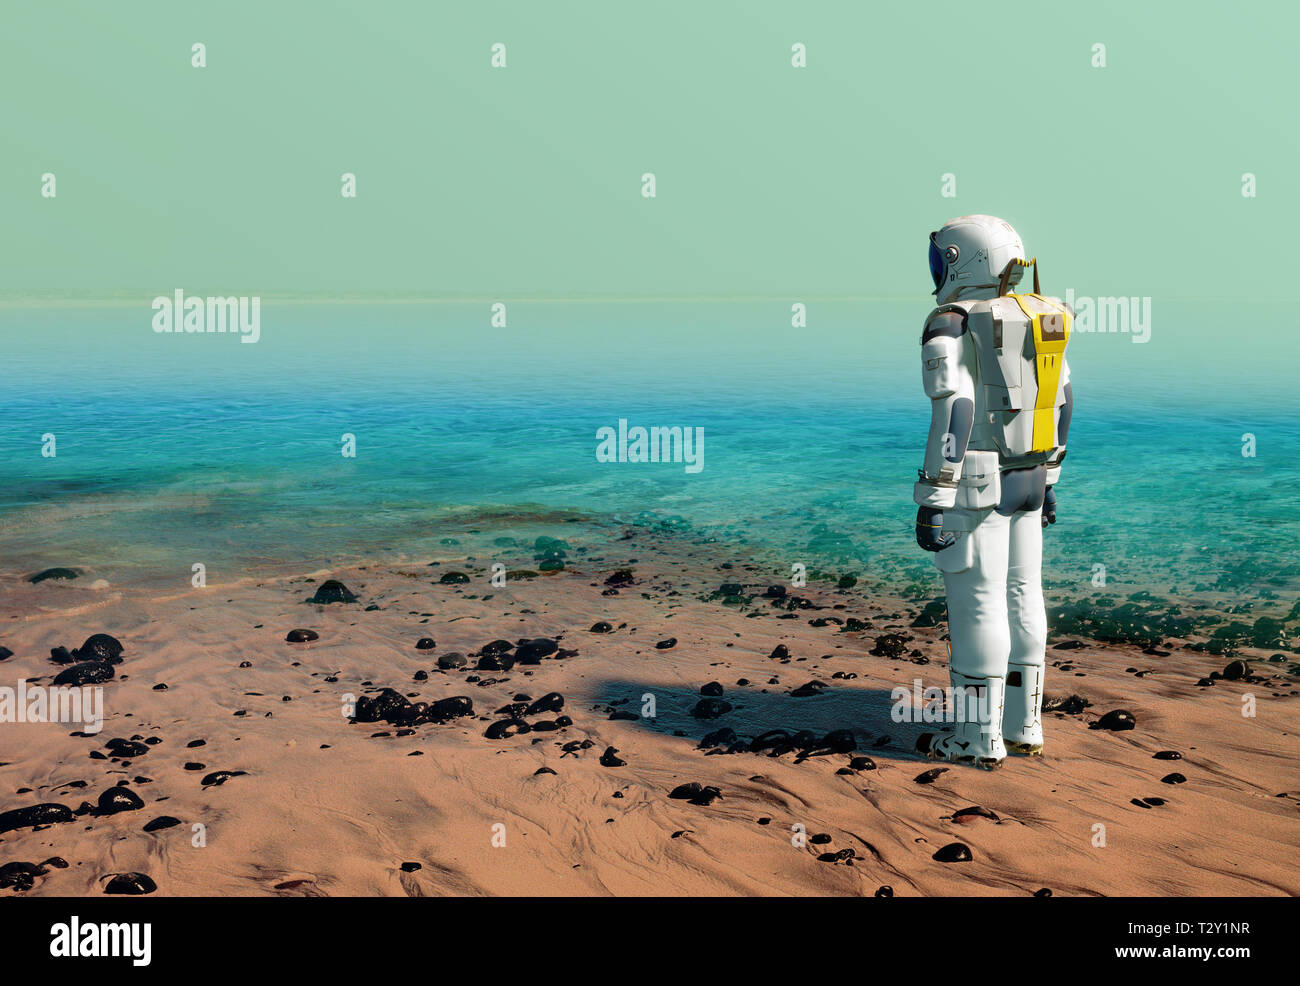 Astronaut at the beach of artificial water reservoir, lake, wearing a space suit on Mars or another planet after terraforming. 3D illustration Stock Photo